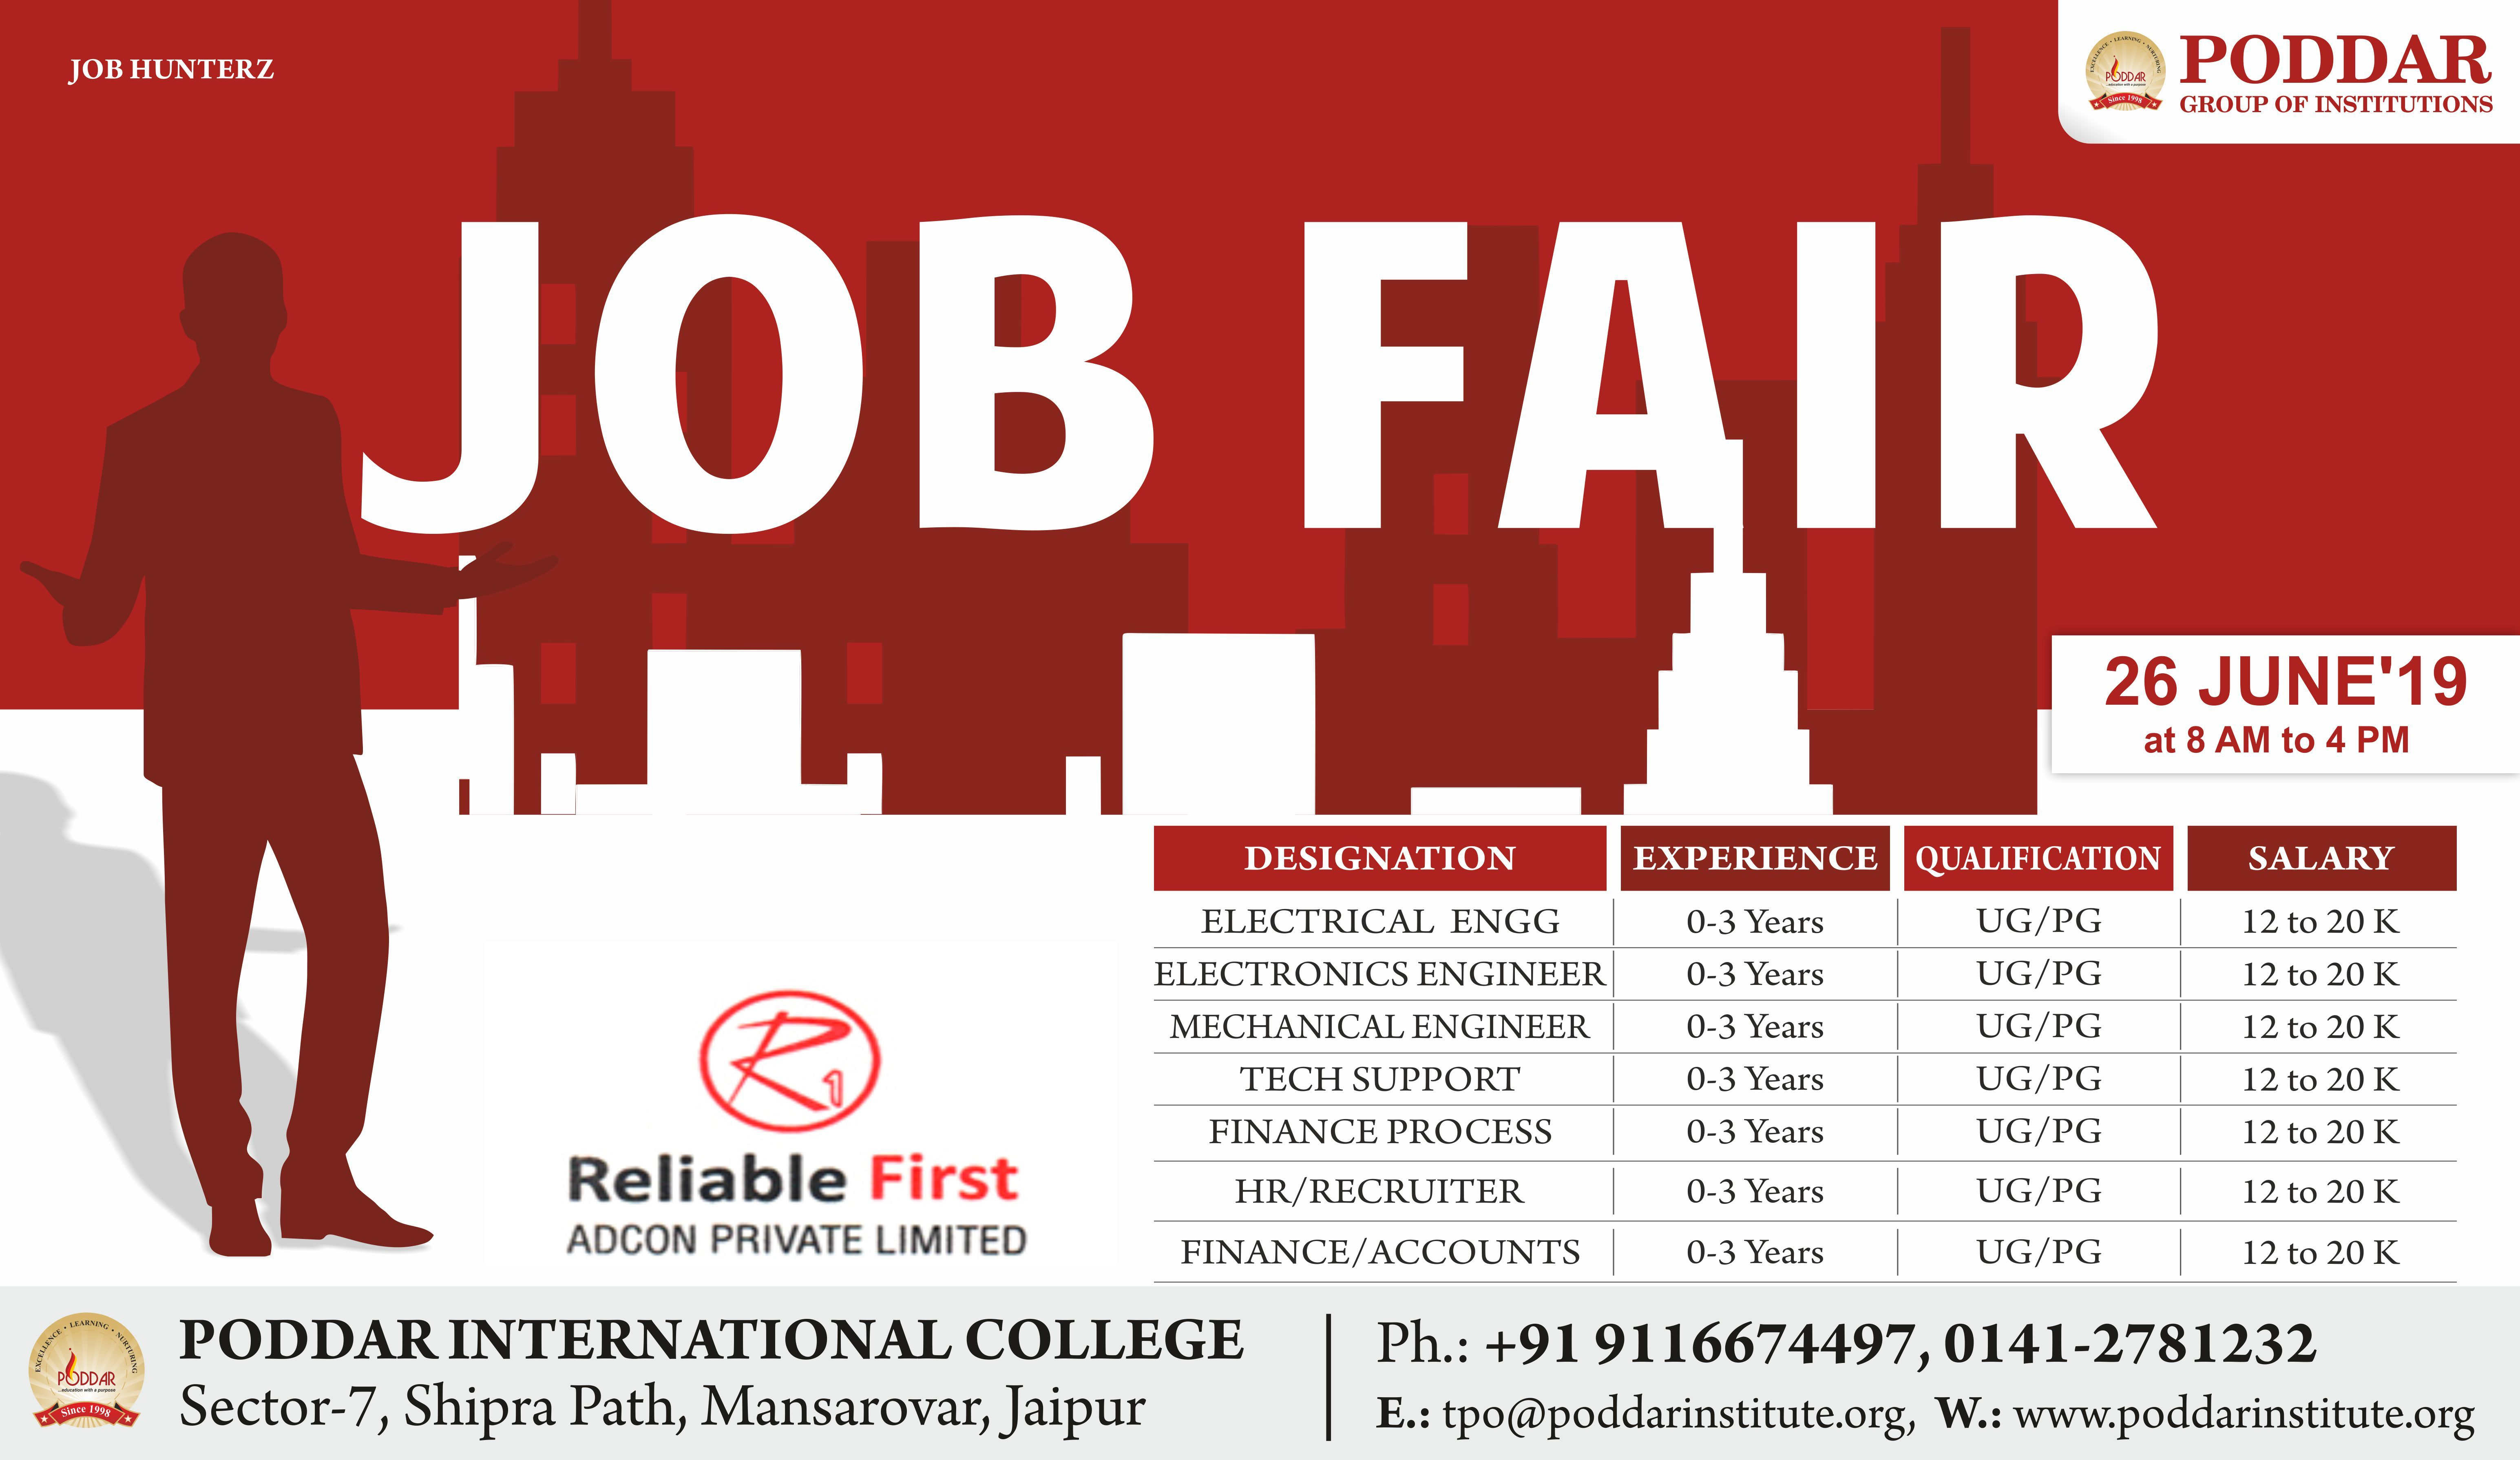 Vacancy in Reliable First at Job Fair 2019 Poddar Group